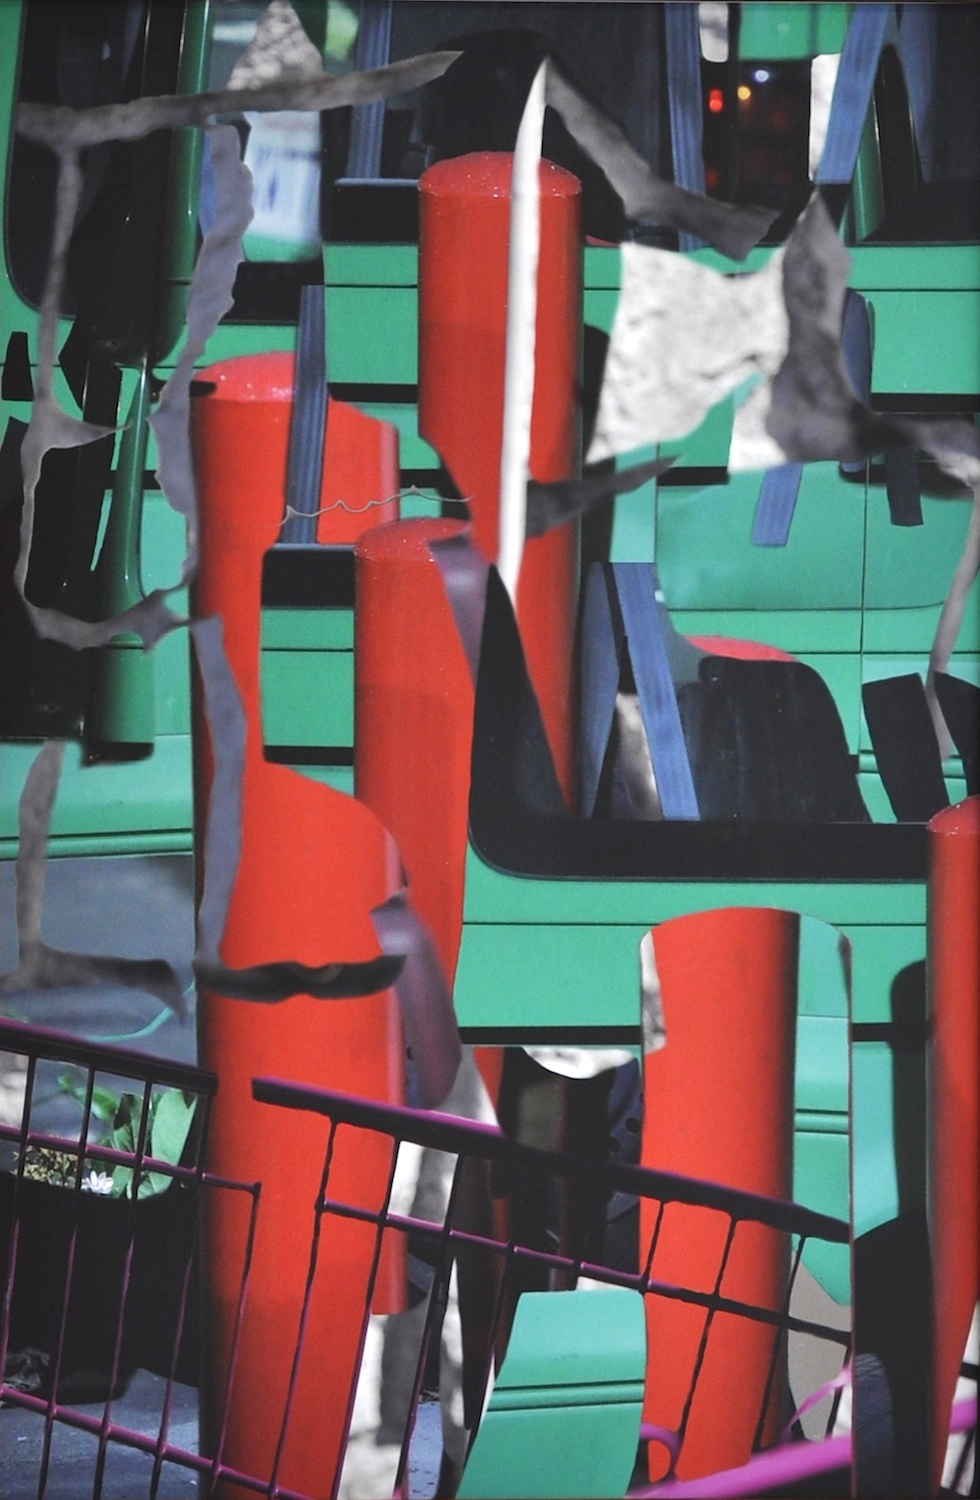 Untitled (Parking)